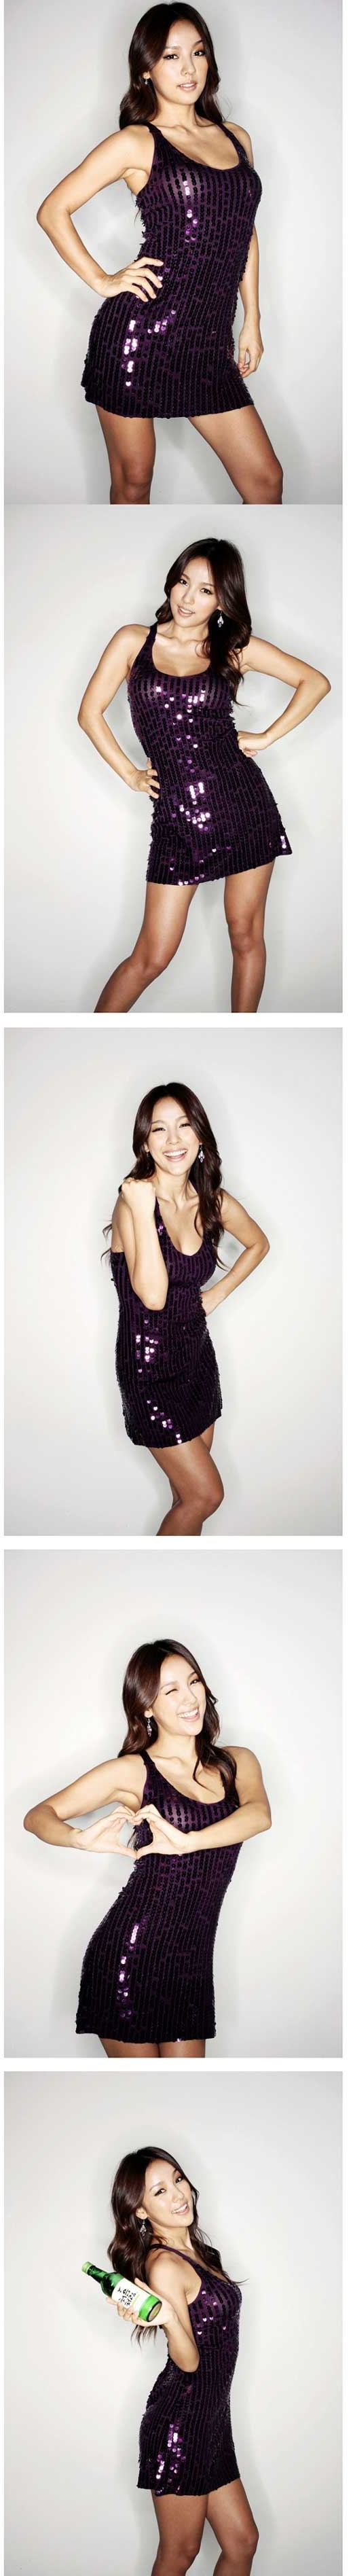 http://popseoul.files.wordpress.com/2009/07/leehyori4_200907051.jpg